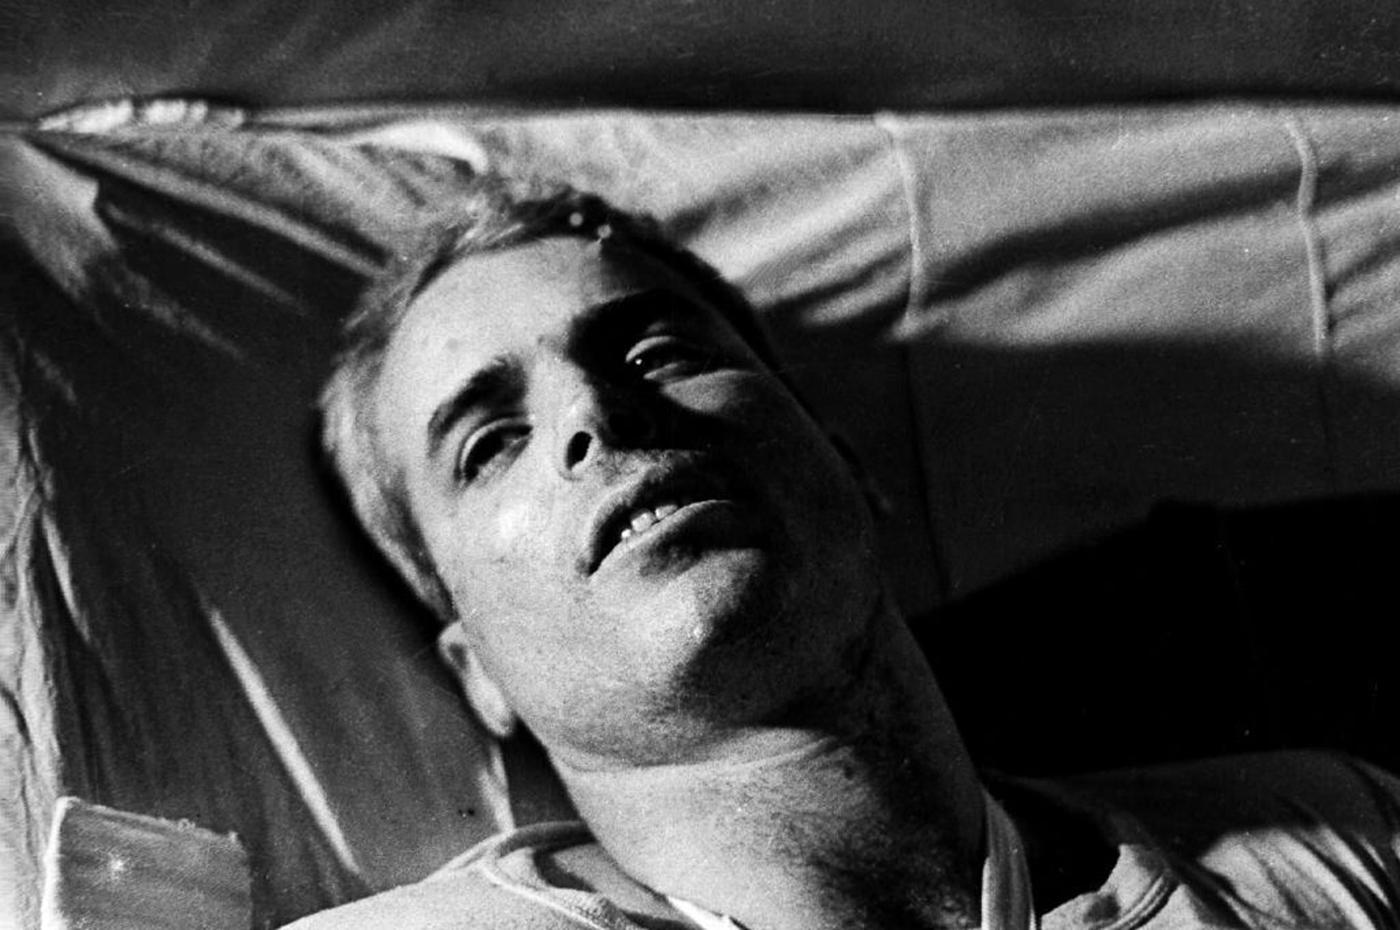 U.S. Navy Air-force Major John McCain lies on a bed in a Hanoi hospital as he was being given medical care for his injuries in Hanoi, Vietnam in 1967.